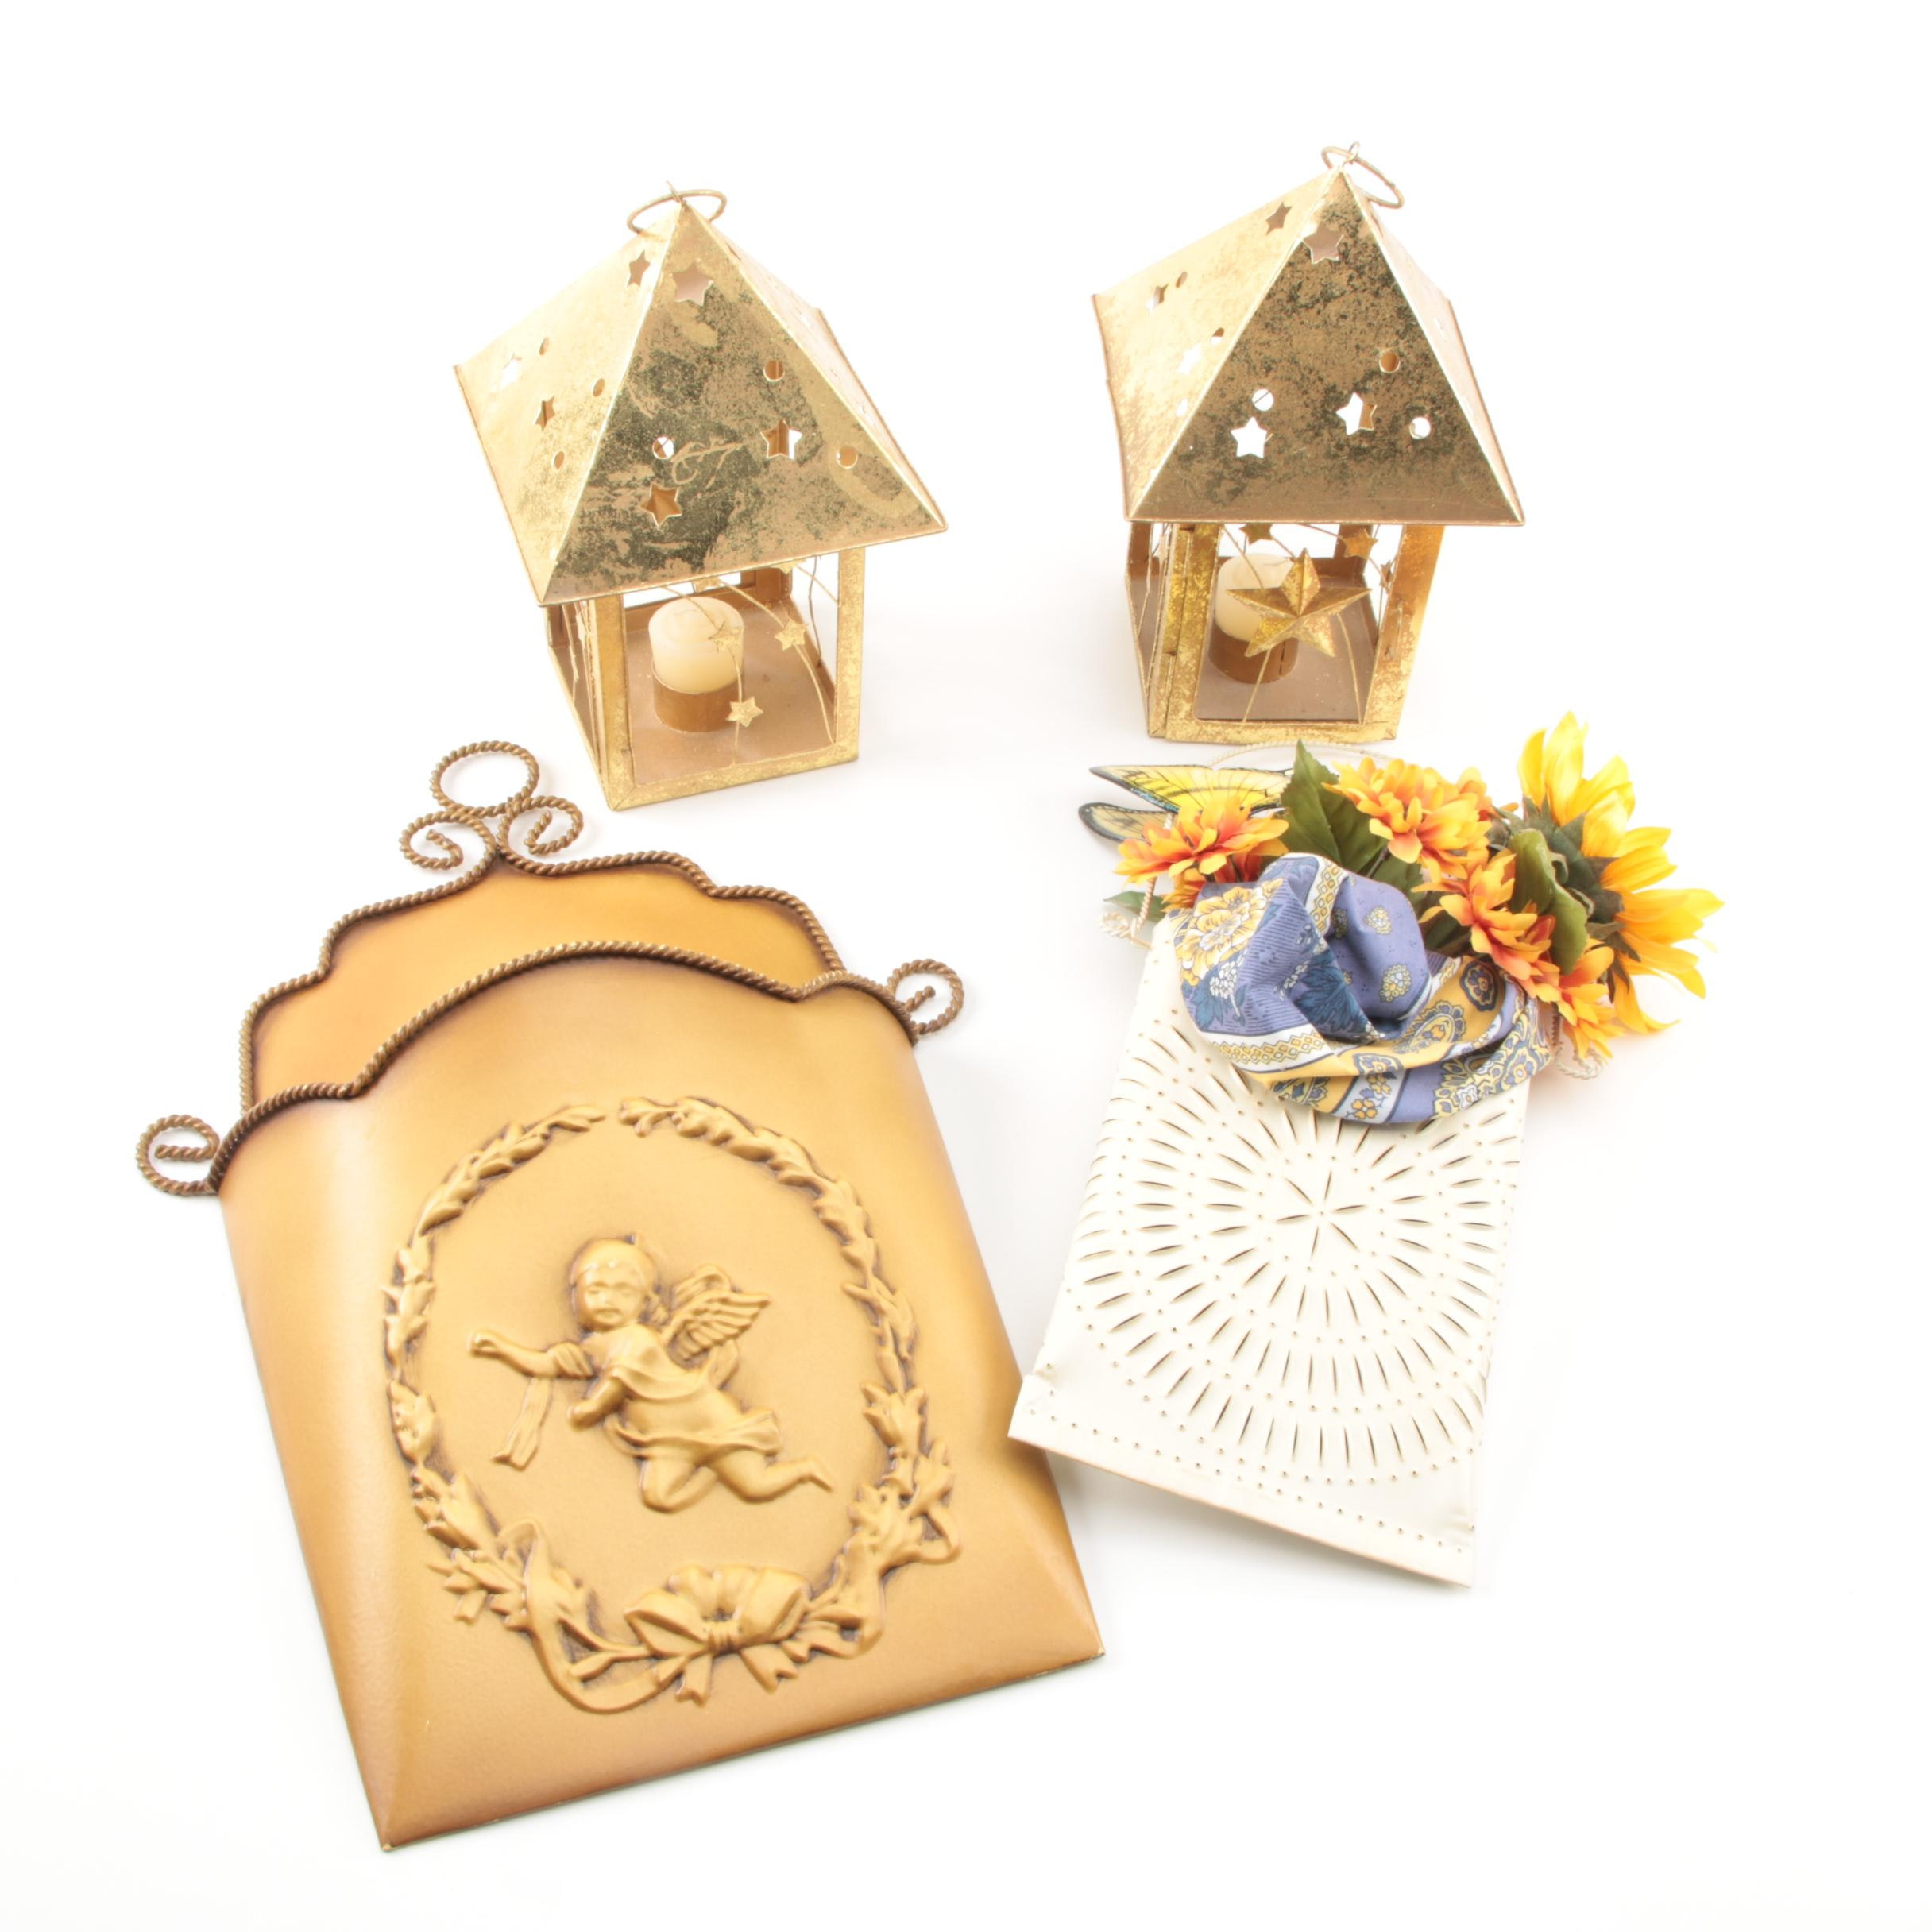 Metal Candle Holders and Wall Pockets